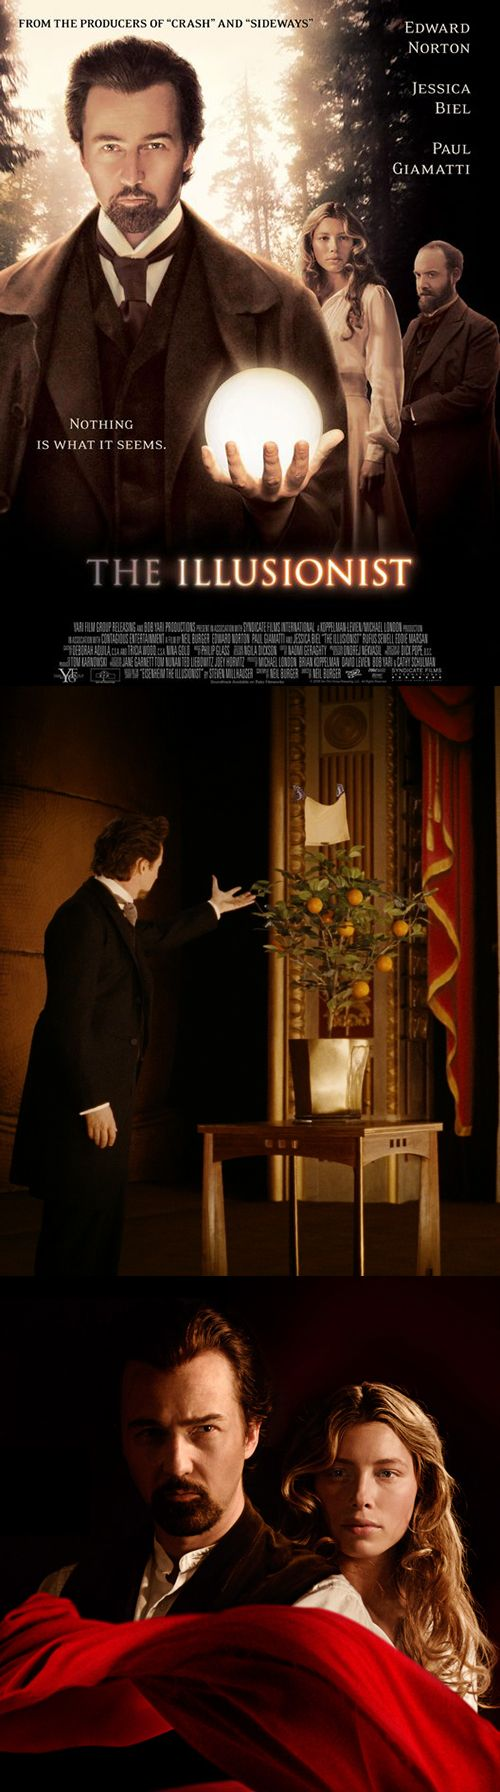 "The Illusionist (2006) • Director: Neil Burger • Writers: Neil Burger (screenplay), Steven Millhauser (short story ""Eisenheim the Illusionist"") • Stars: Edward Norton, Paul Giamatti, Jessica Biel"